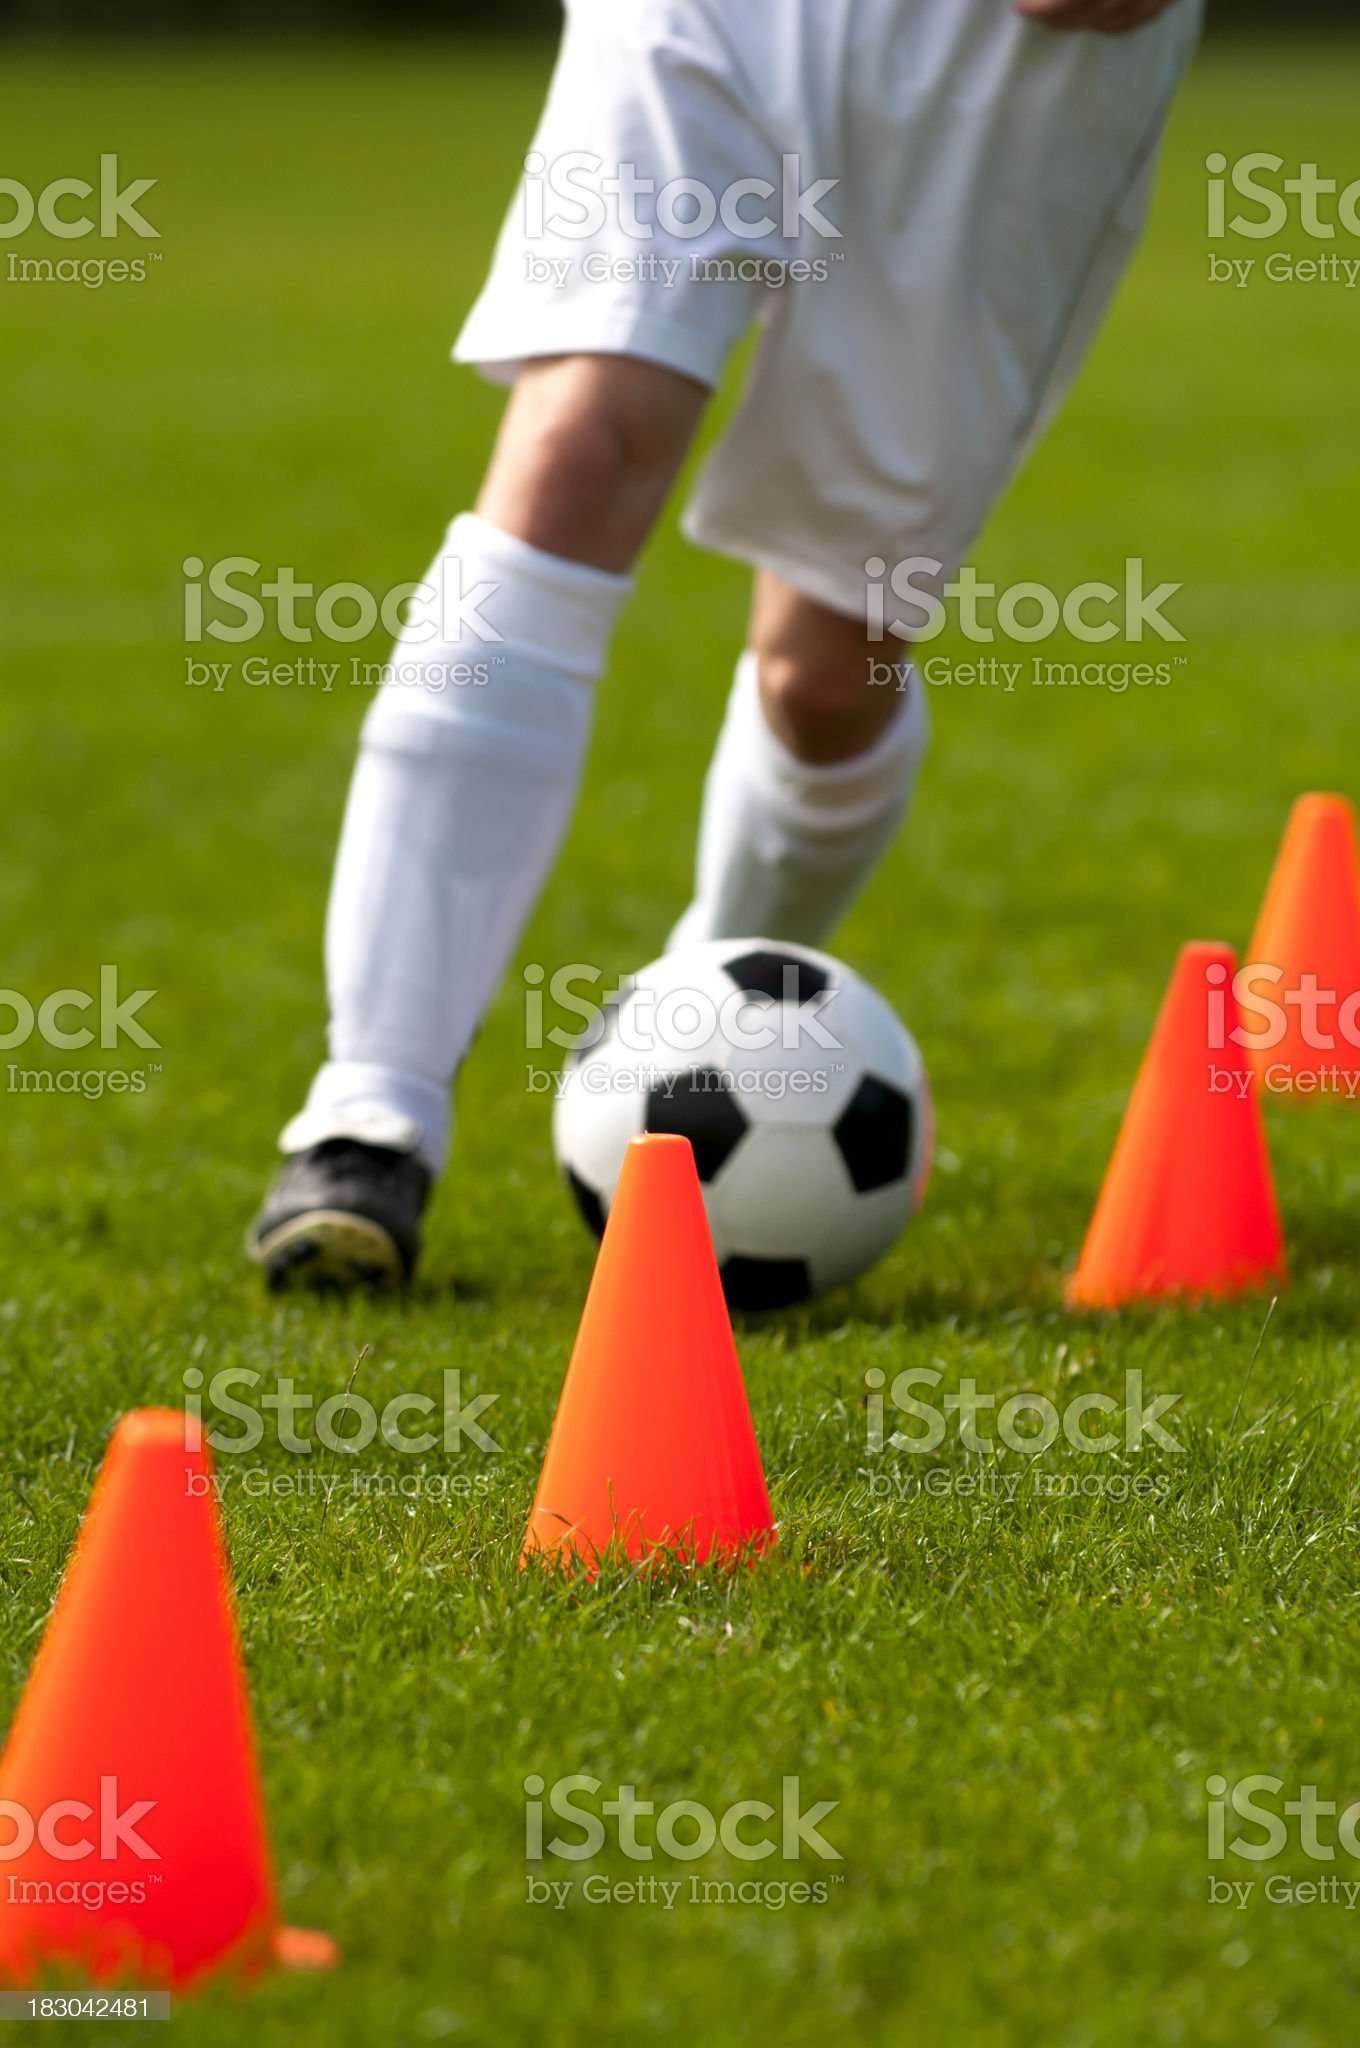 Soccer training with football and red cones on the field royalty-free stock photo